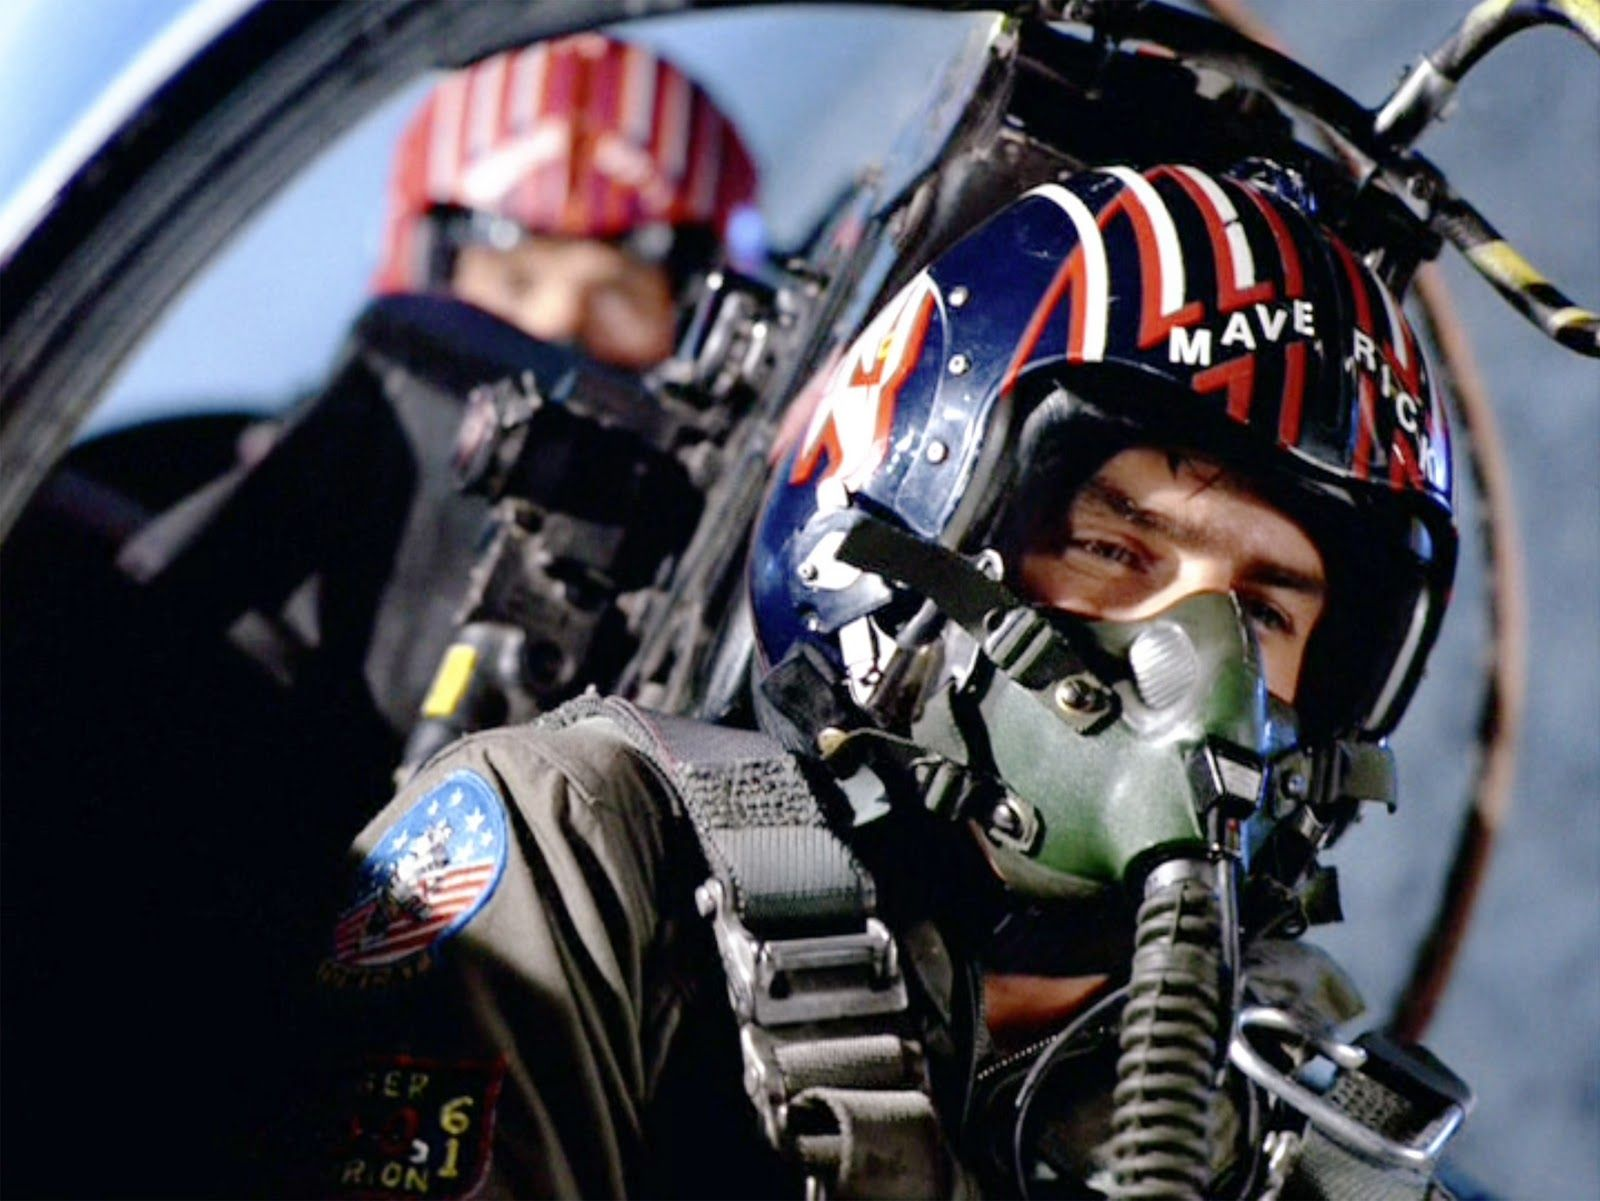 6ed01a35152fc0c4afd0e69925340afd 20 Things You May Have Missed In Top Gun